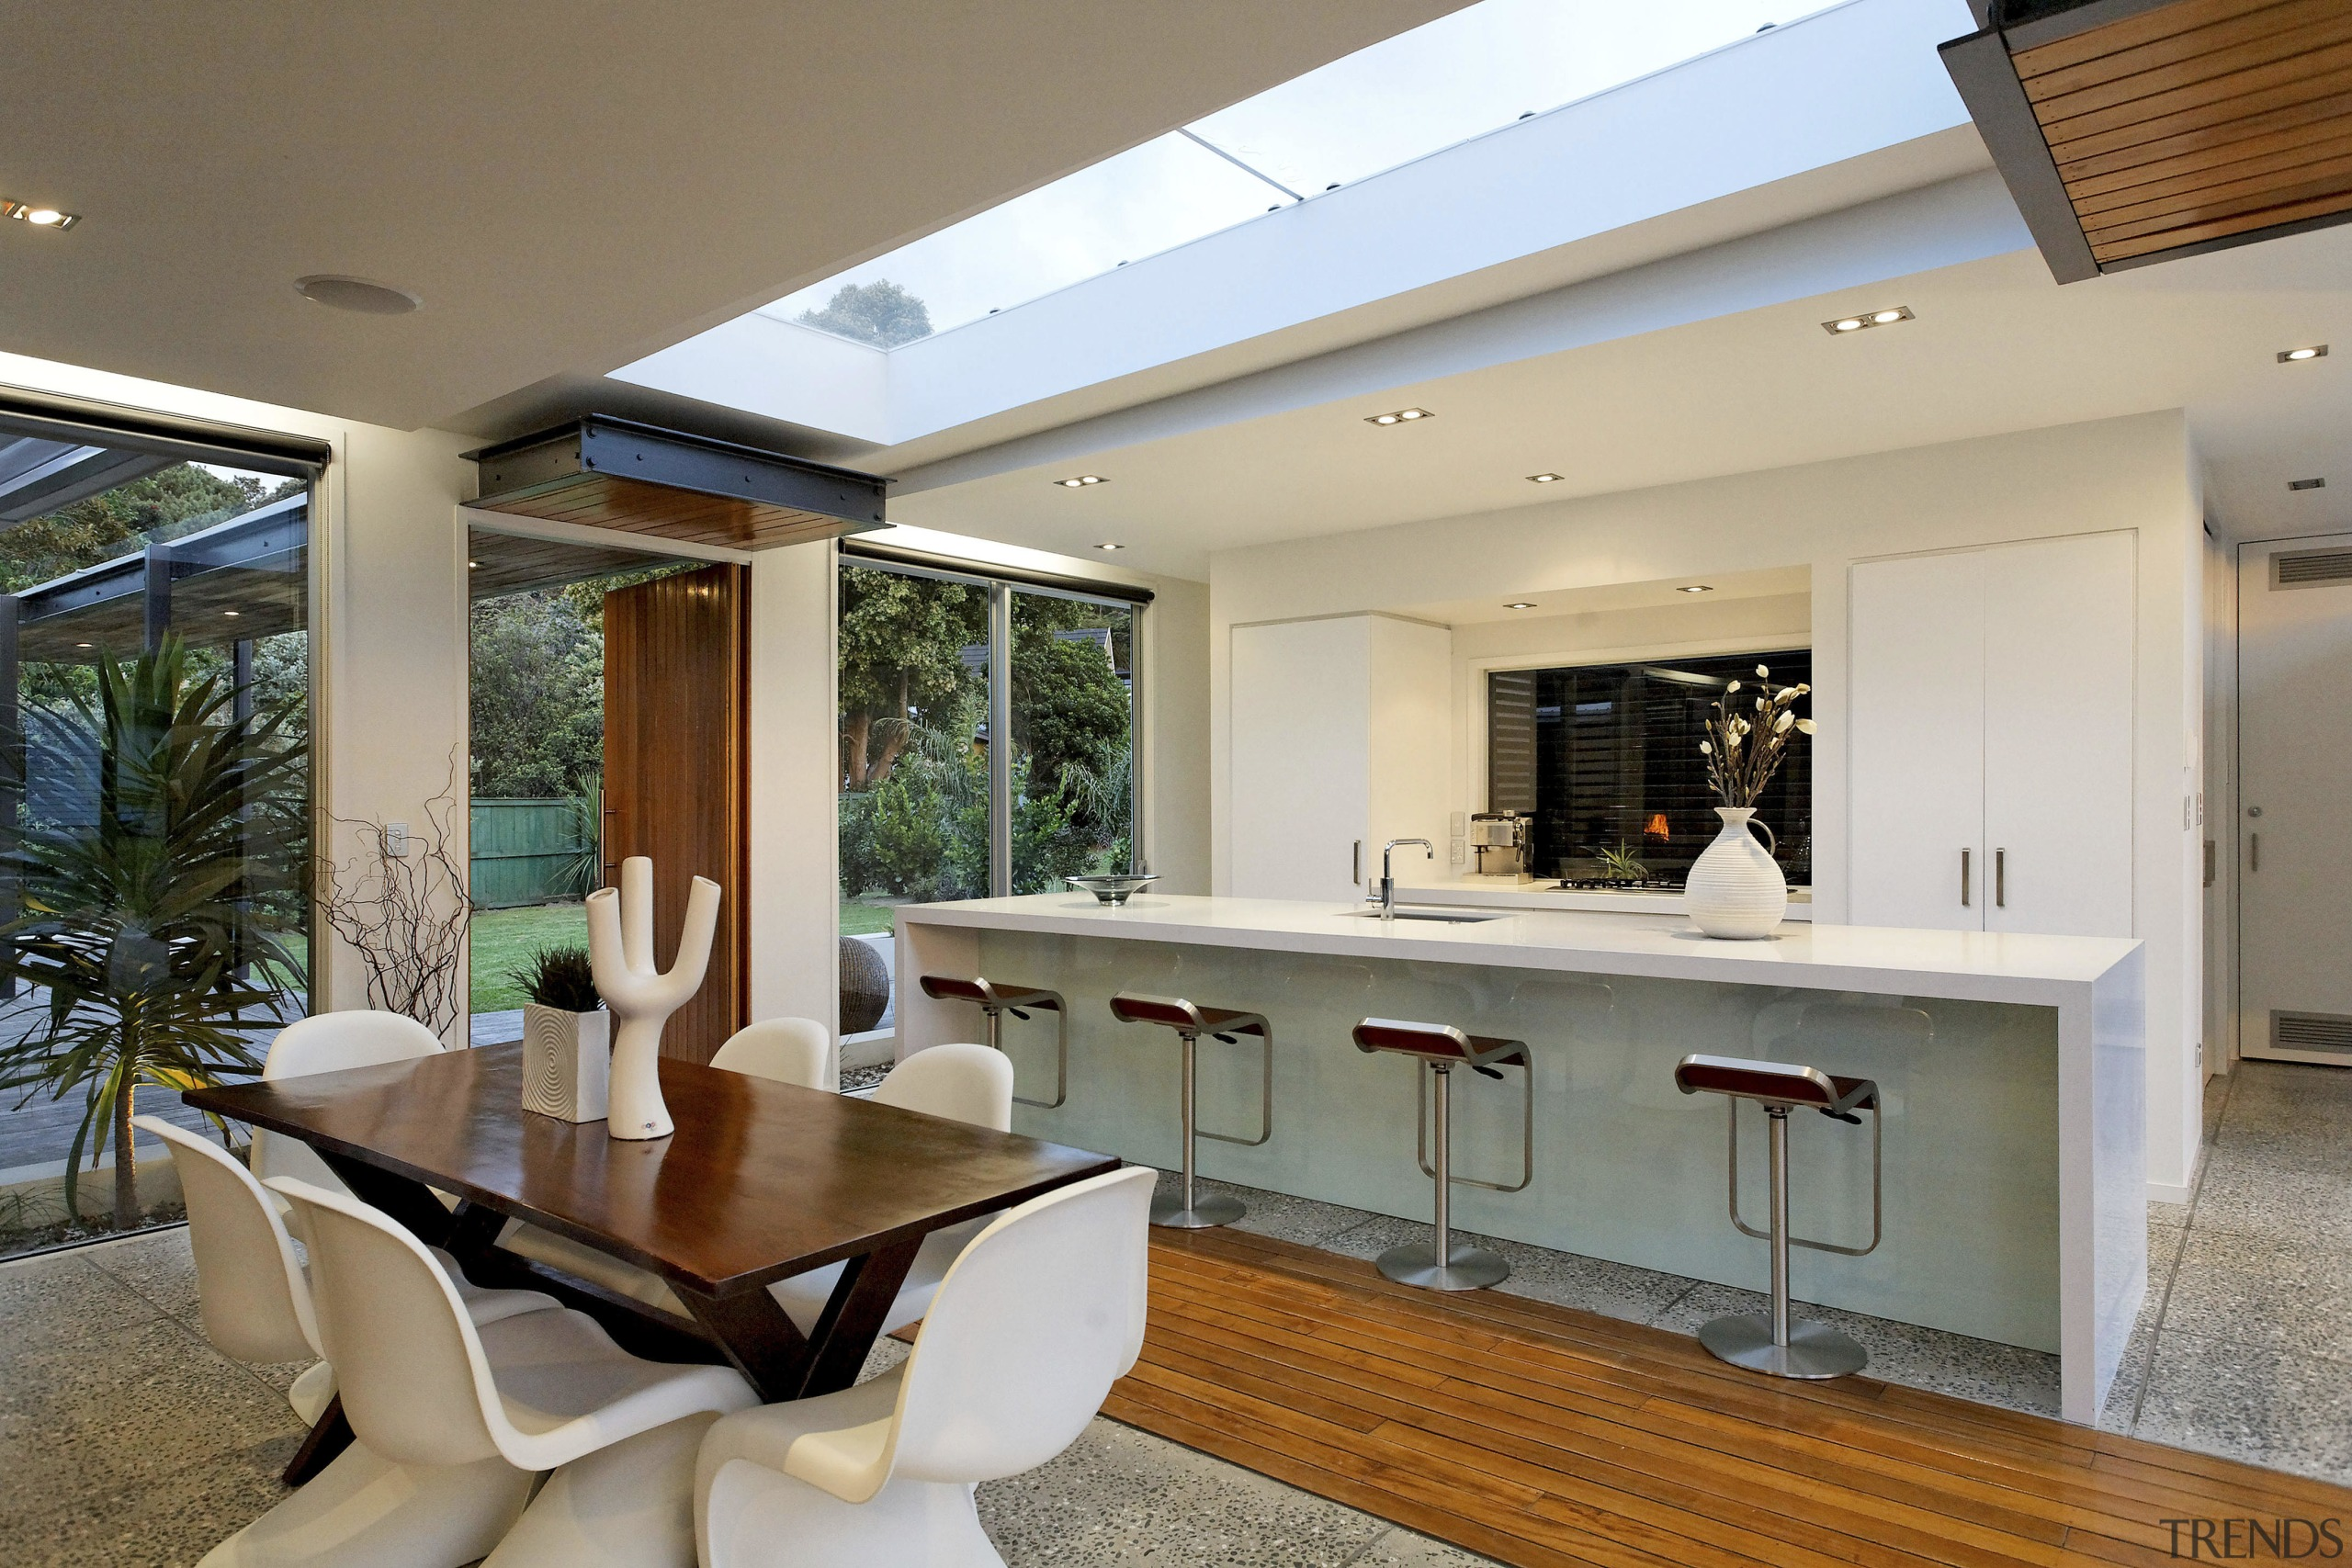 Contemporary home has a skylight above - Contemporary ceiling, estate, house, interior design, living room, property, real estate, window, gray, brown